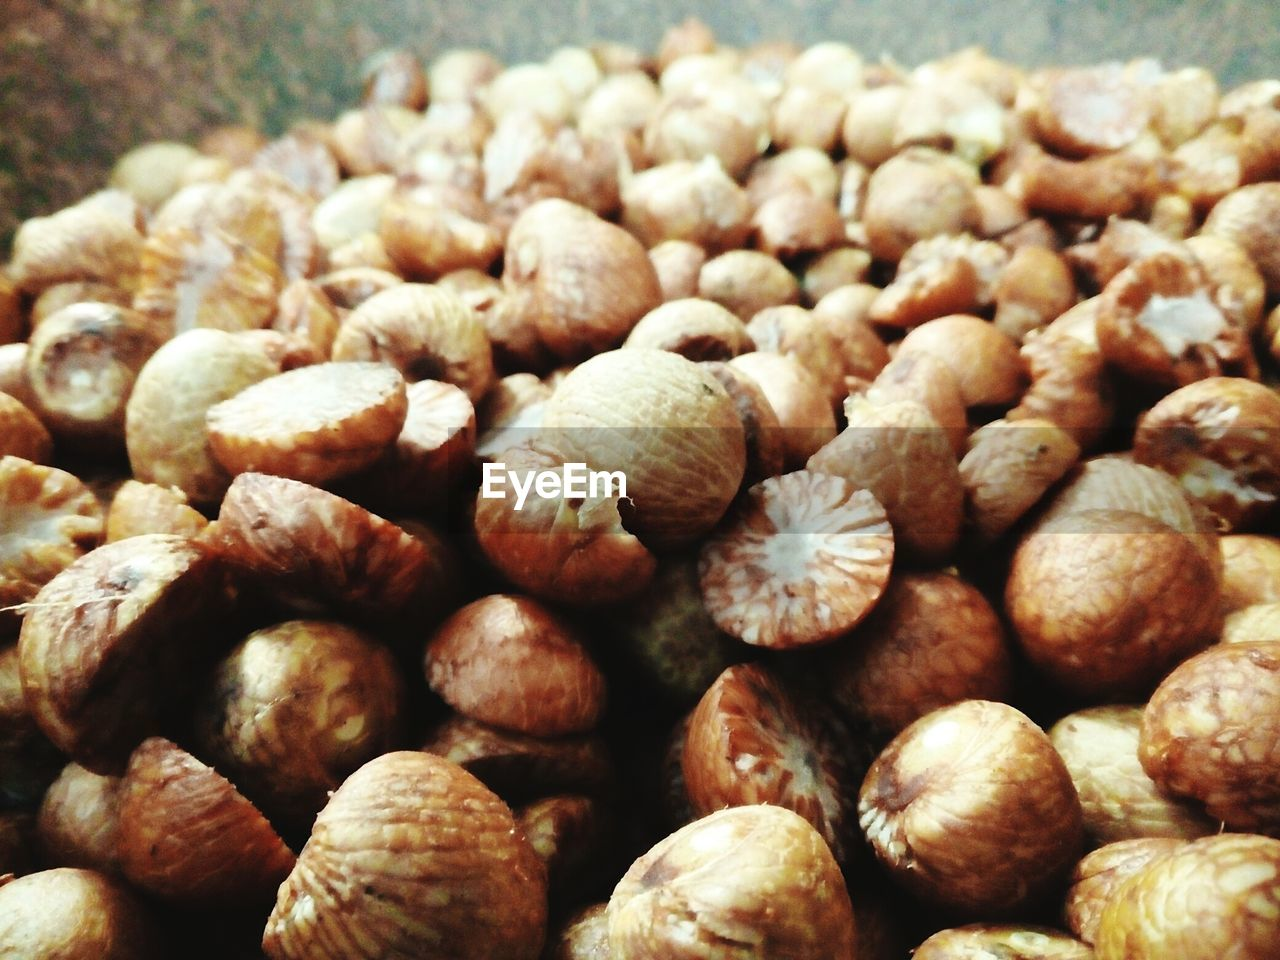 food and drink, nut - food, food, close-up, no people, nutshell, healthy eating, day, acorn, freshness, nature, indoors